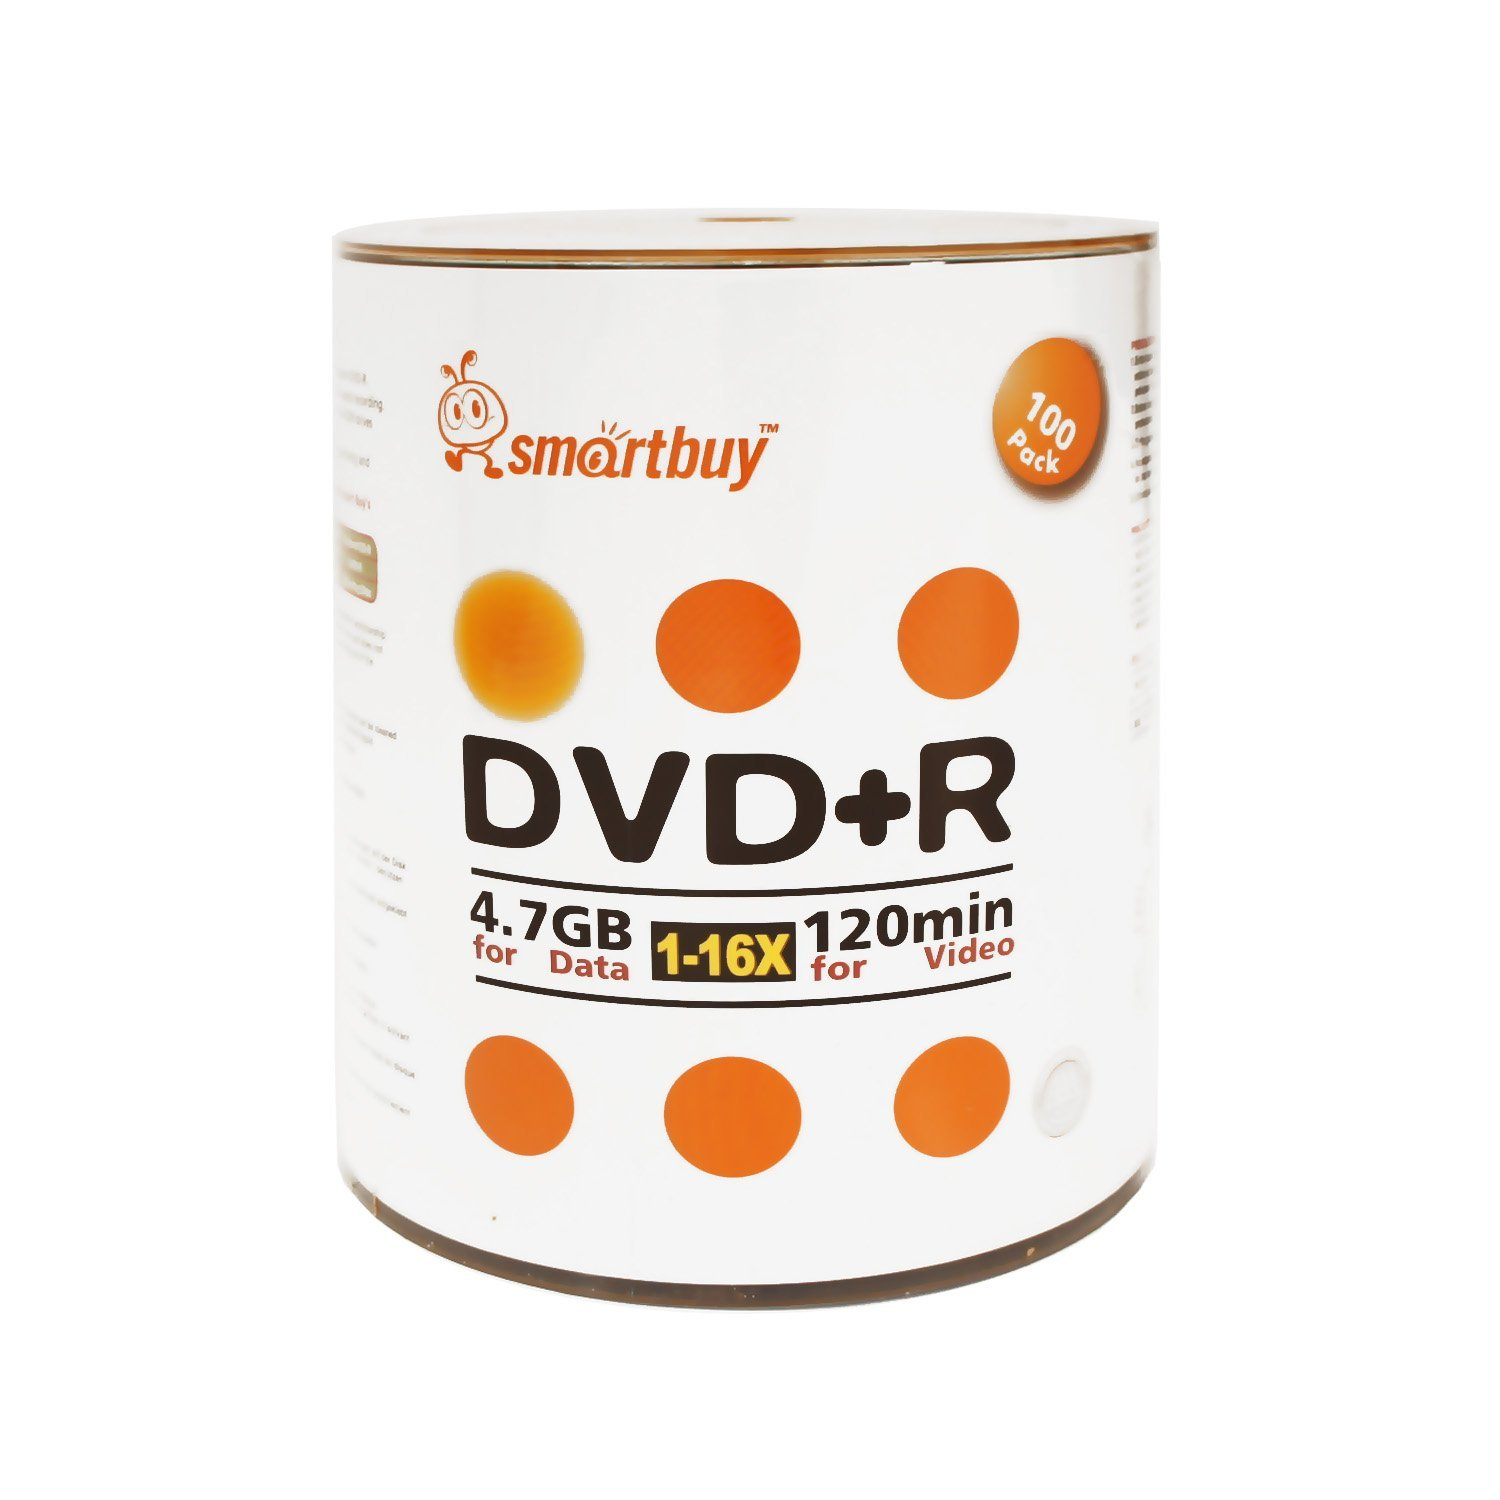 Smart Buy 1000 Pack DVD+R 4.7gb 16x Logo Blank Data Video Movie Recordable Disc, 1000 Disc 1000pk by Smart Buy (Image #2)